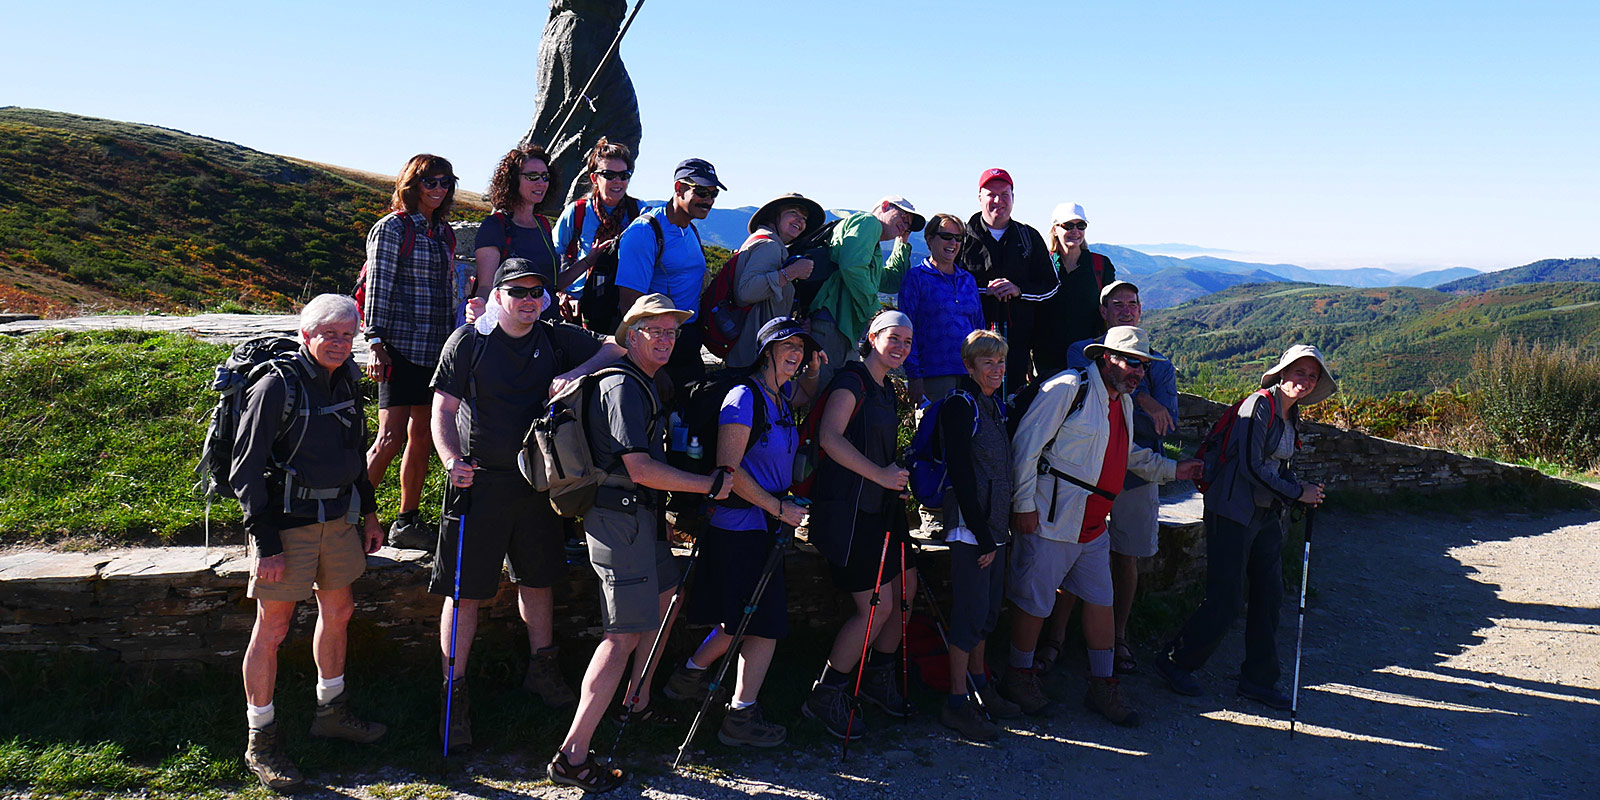 Custom Pilgrimages for the Camino de Santiago